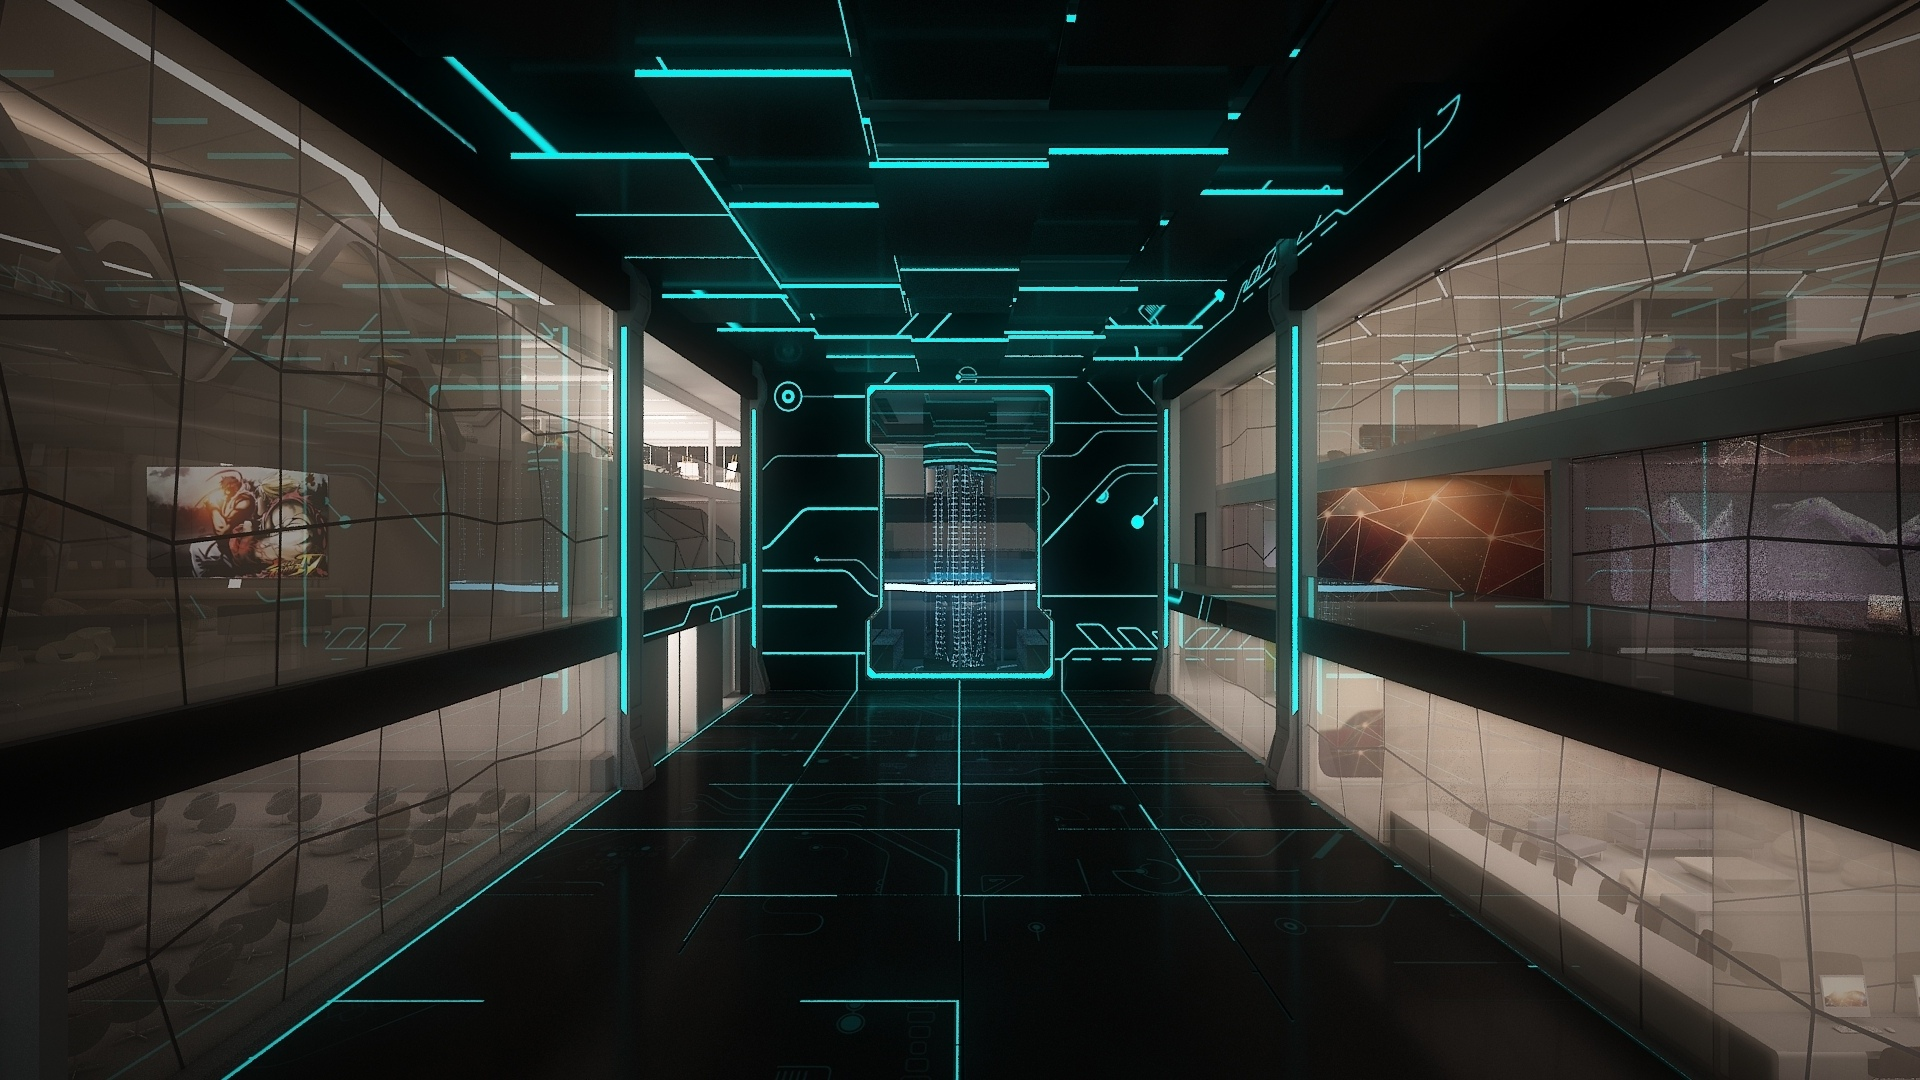 Staley room technology sci fi science computer futuristic wallpaper 1920x1080